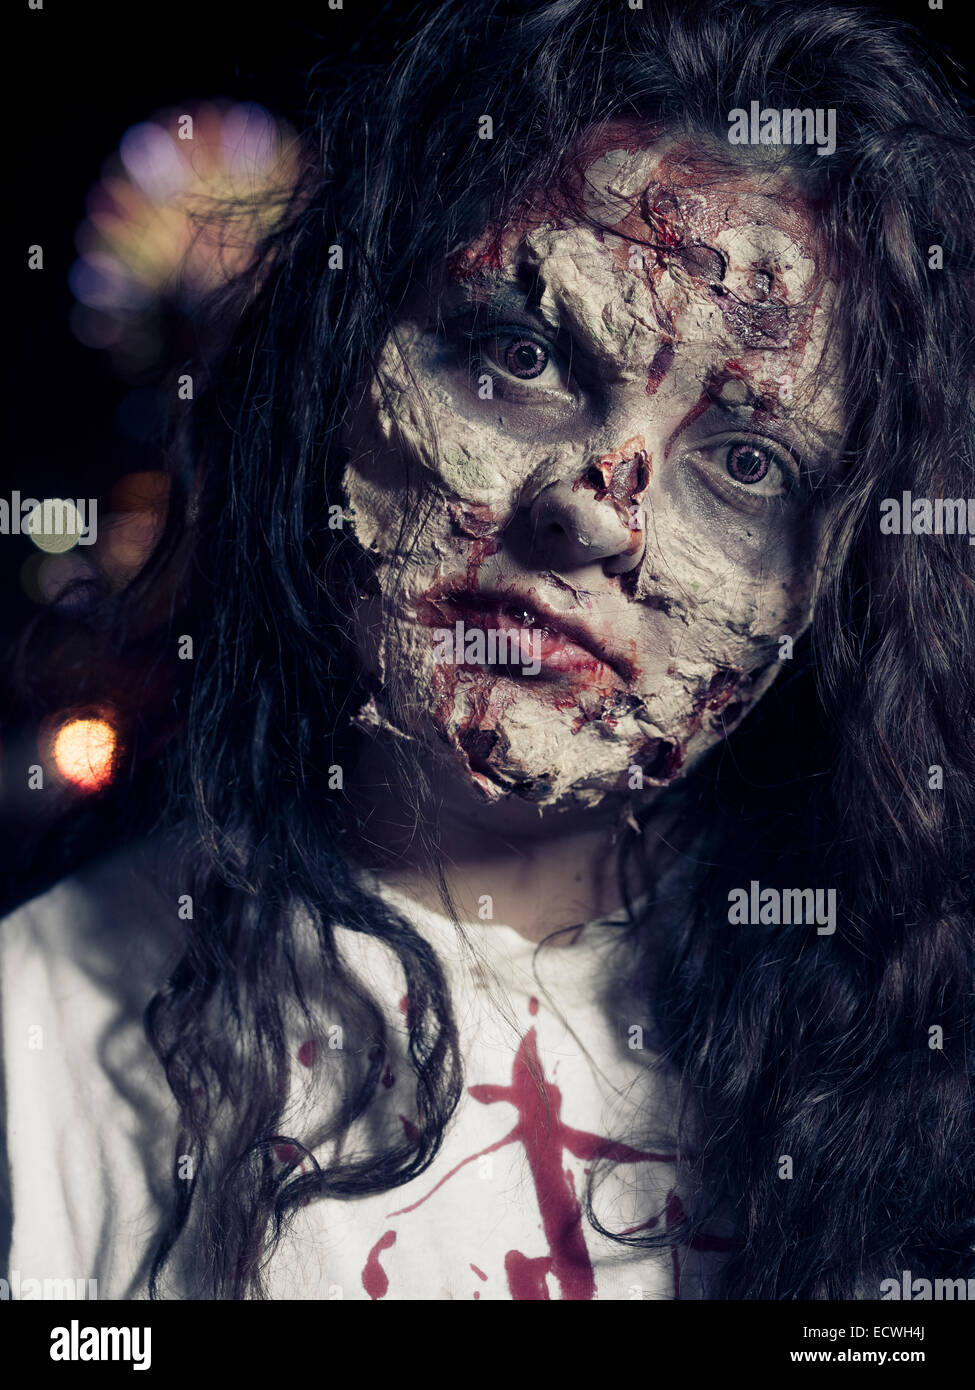 stock photo zombie halloween costume with impressive special effects makeup - Halloween Effects Makeup